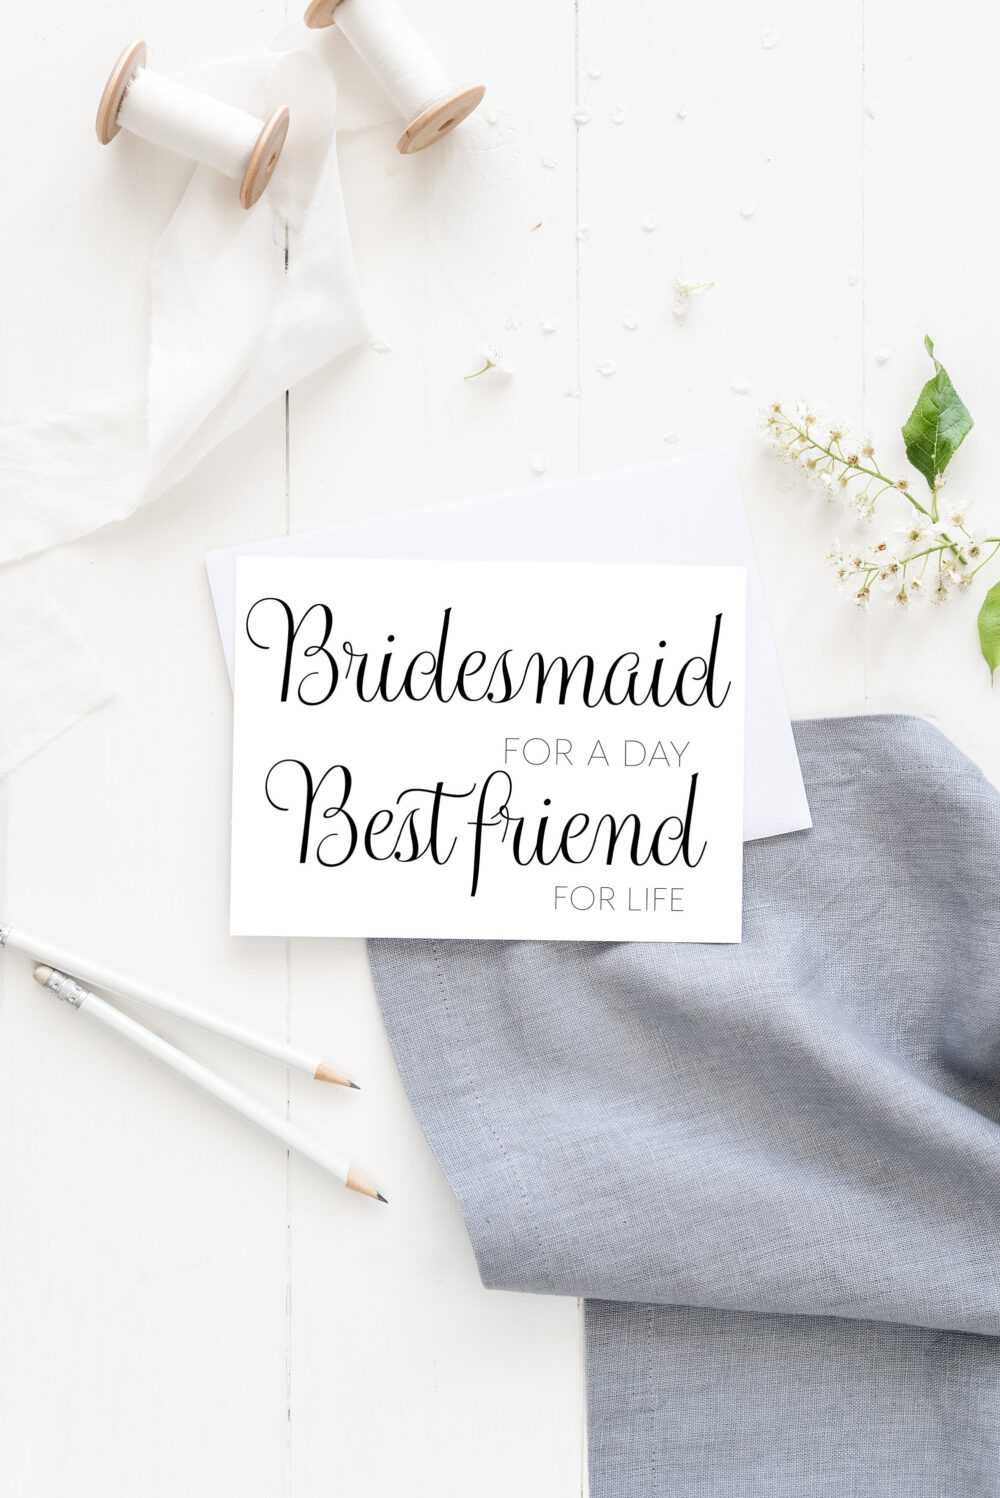 Bridesmaid Proposal Card, Funny Will You Be My Wedding Best Friend Card